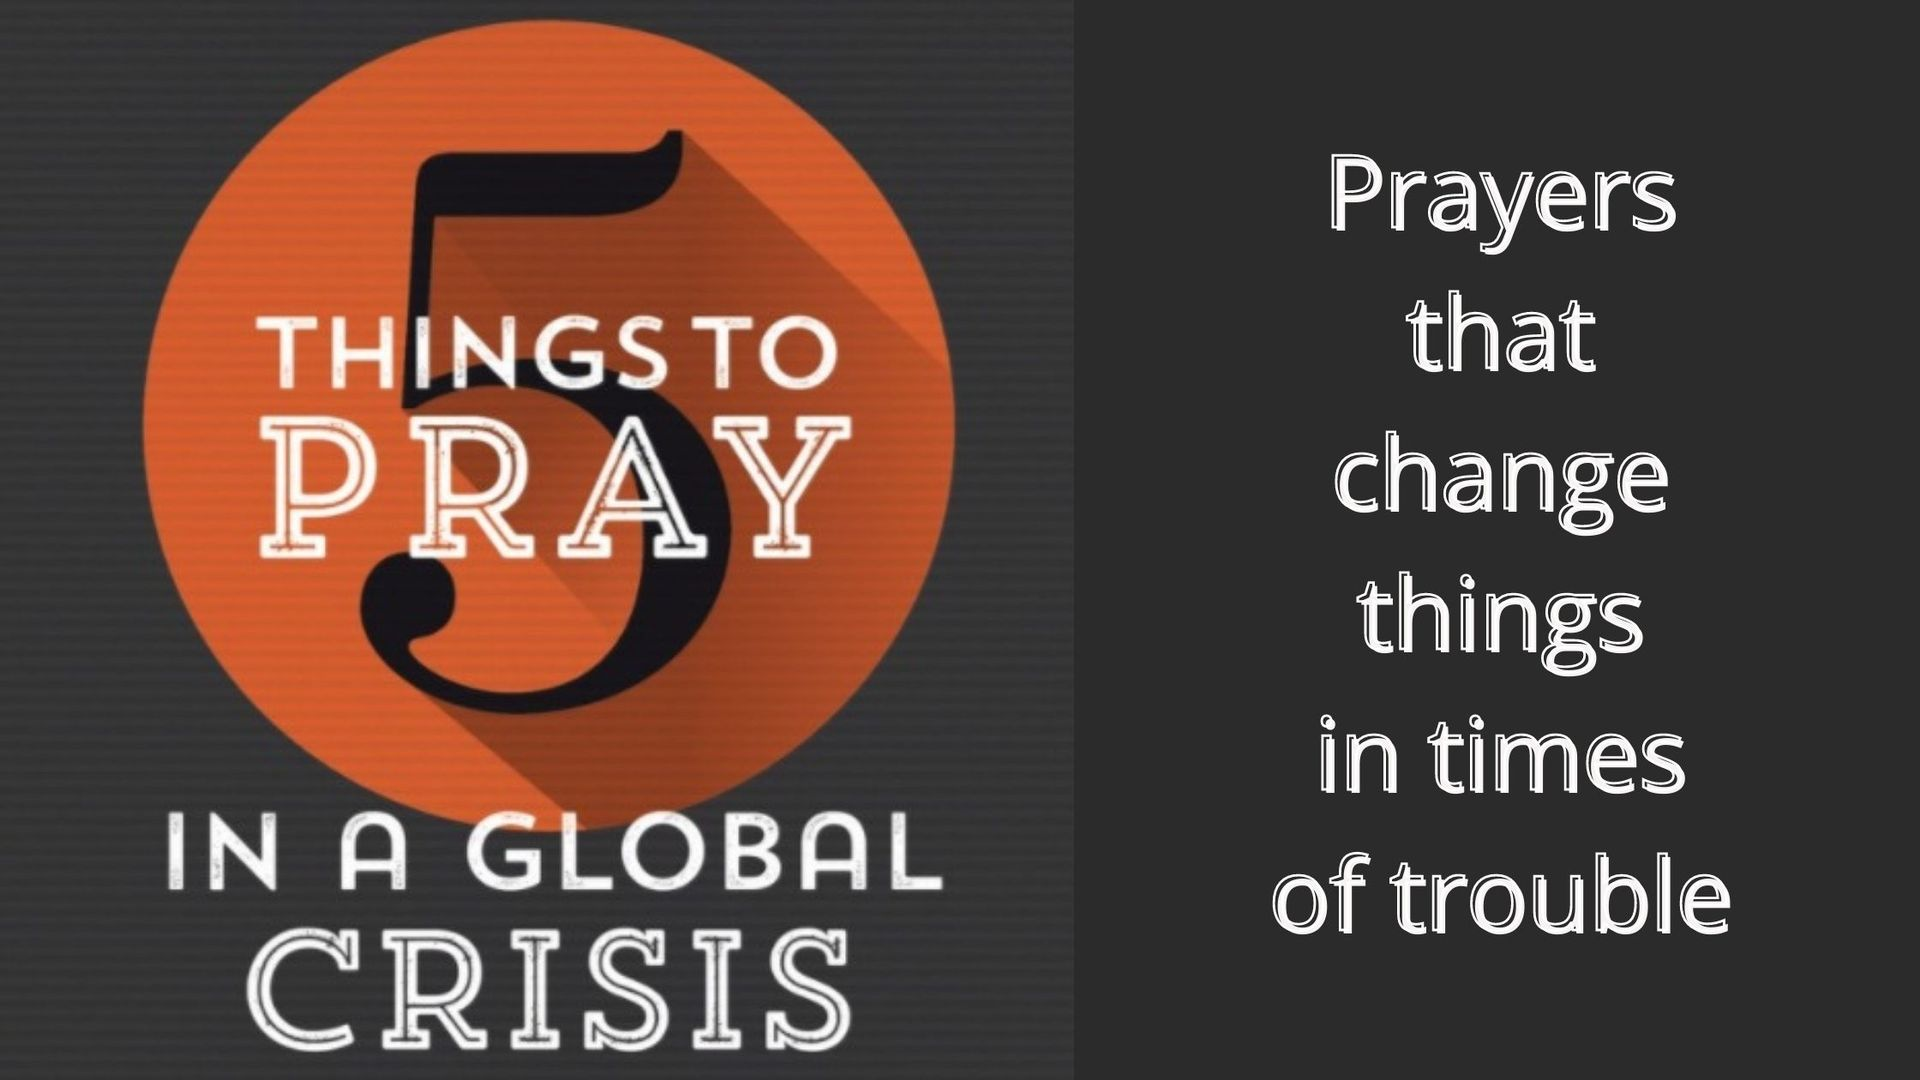 5 Things to Pray in a Global Crisis - a book written during the COVID-19 pandemic